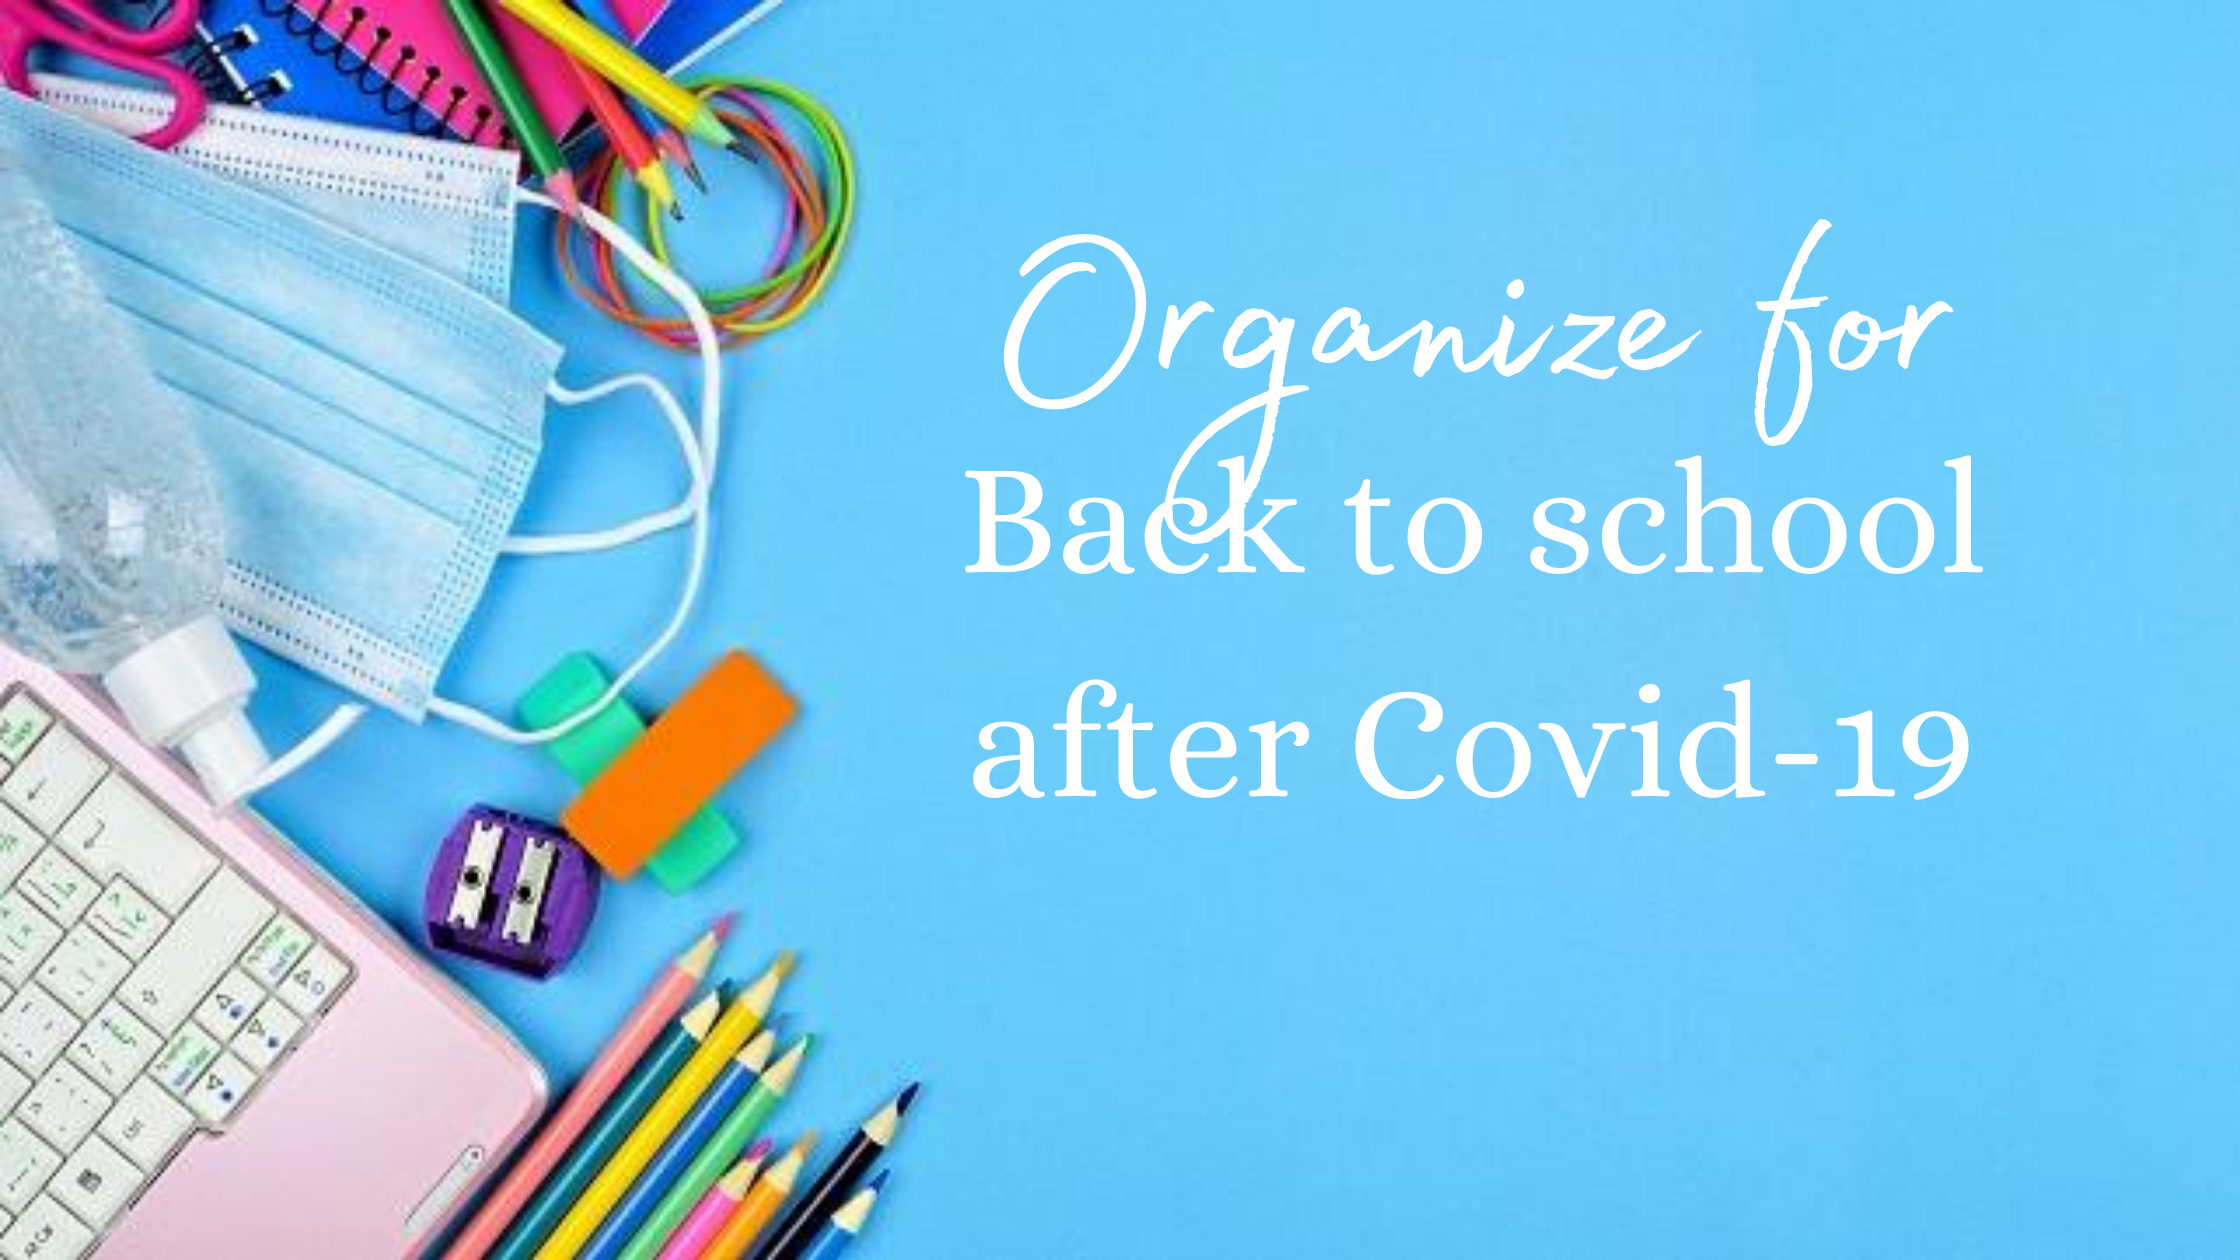 Back to school after Covid-19